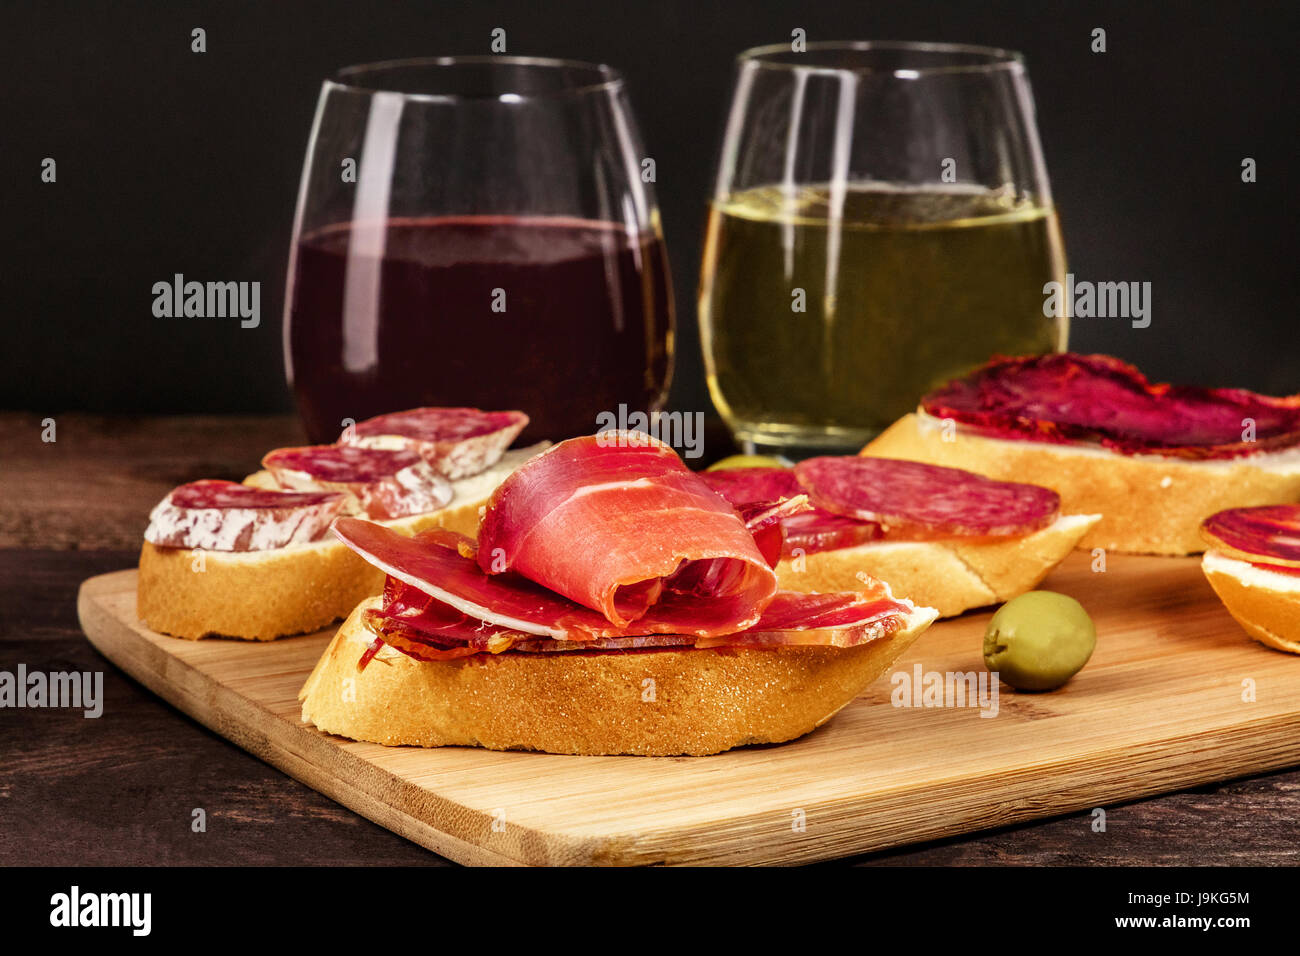 A photo of embutidos tapas, sandwiches with jamon, salchichon, lomo, and other Spanish sausages, with glasses of - Stock Image